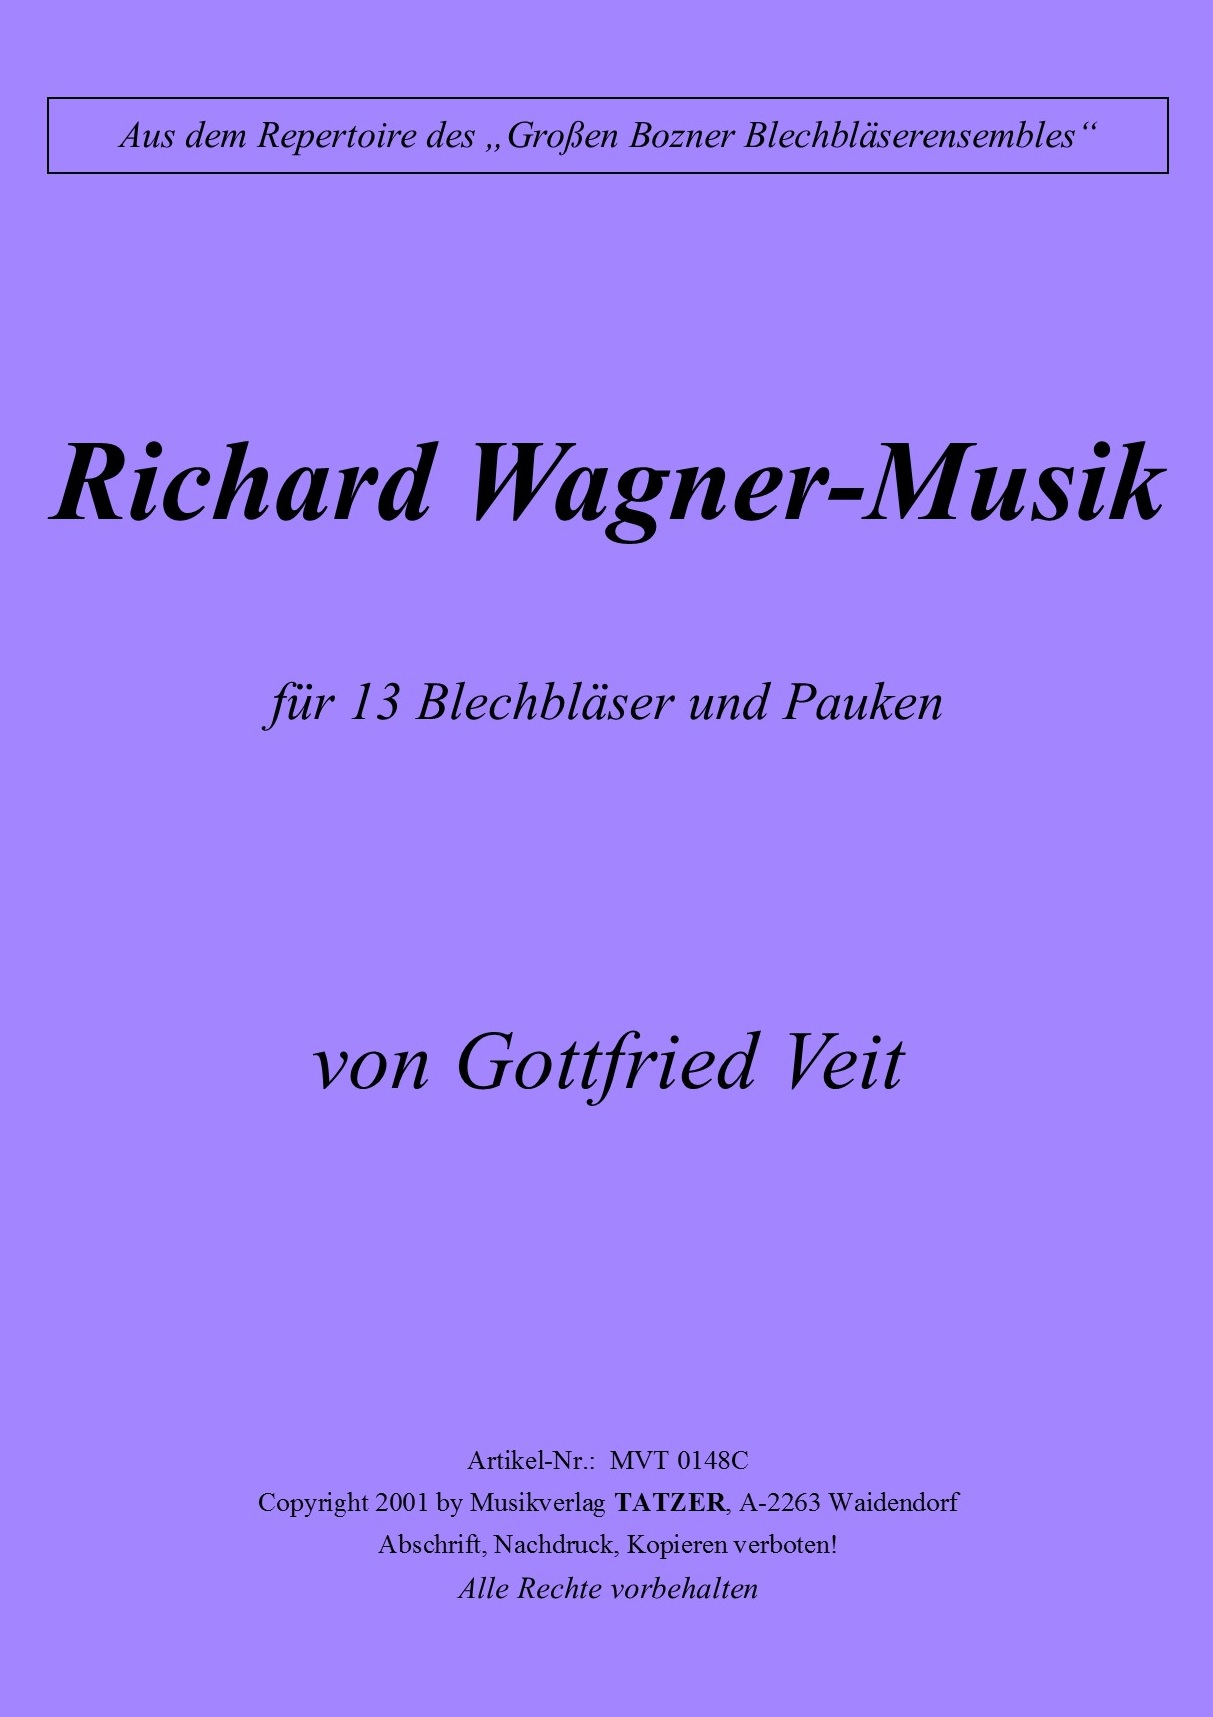 Richard Wagner Musik (C), Gottfried Veit